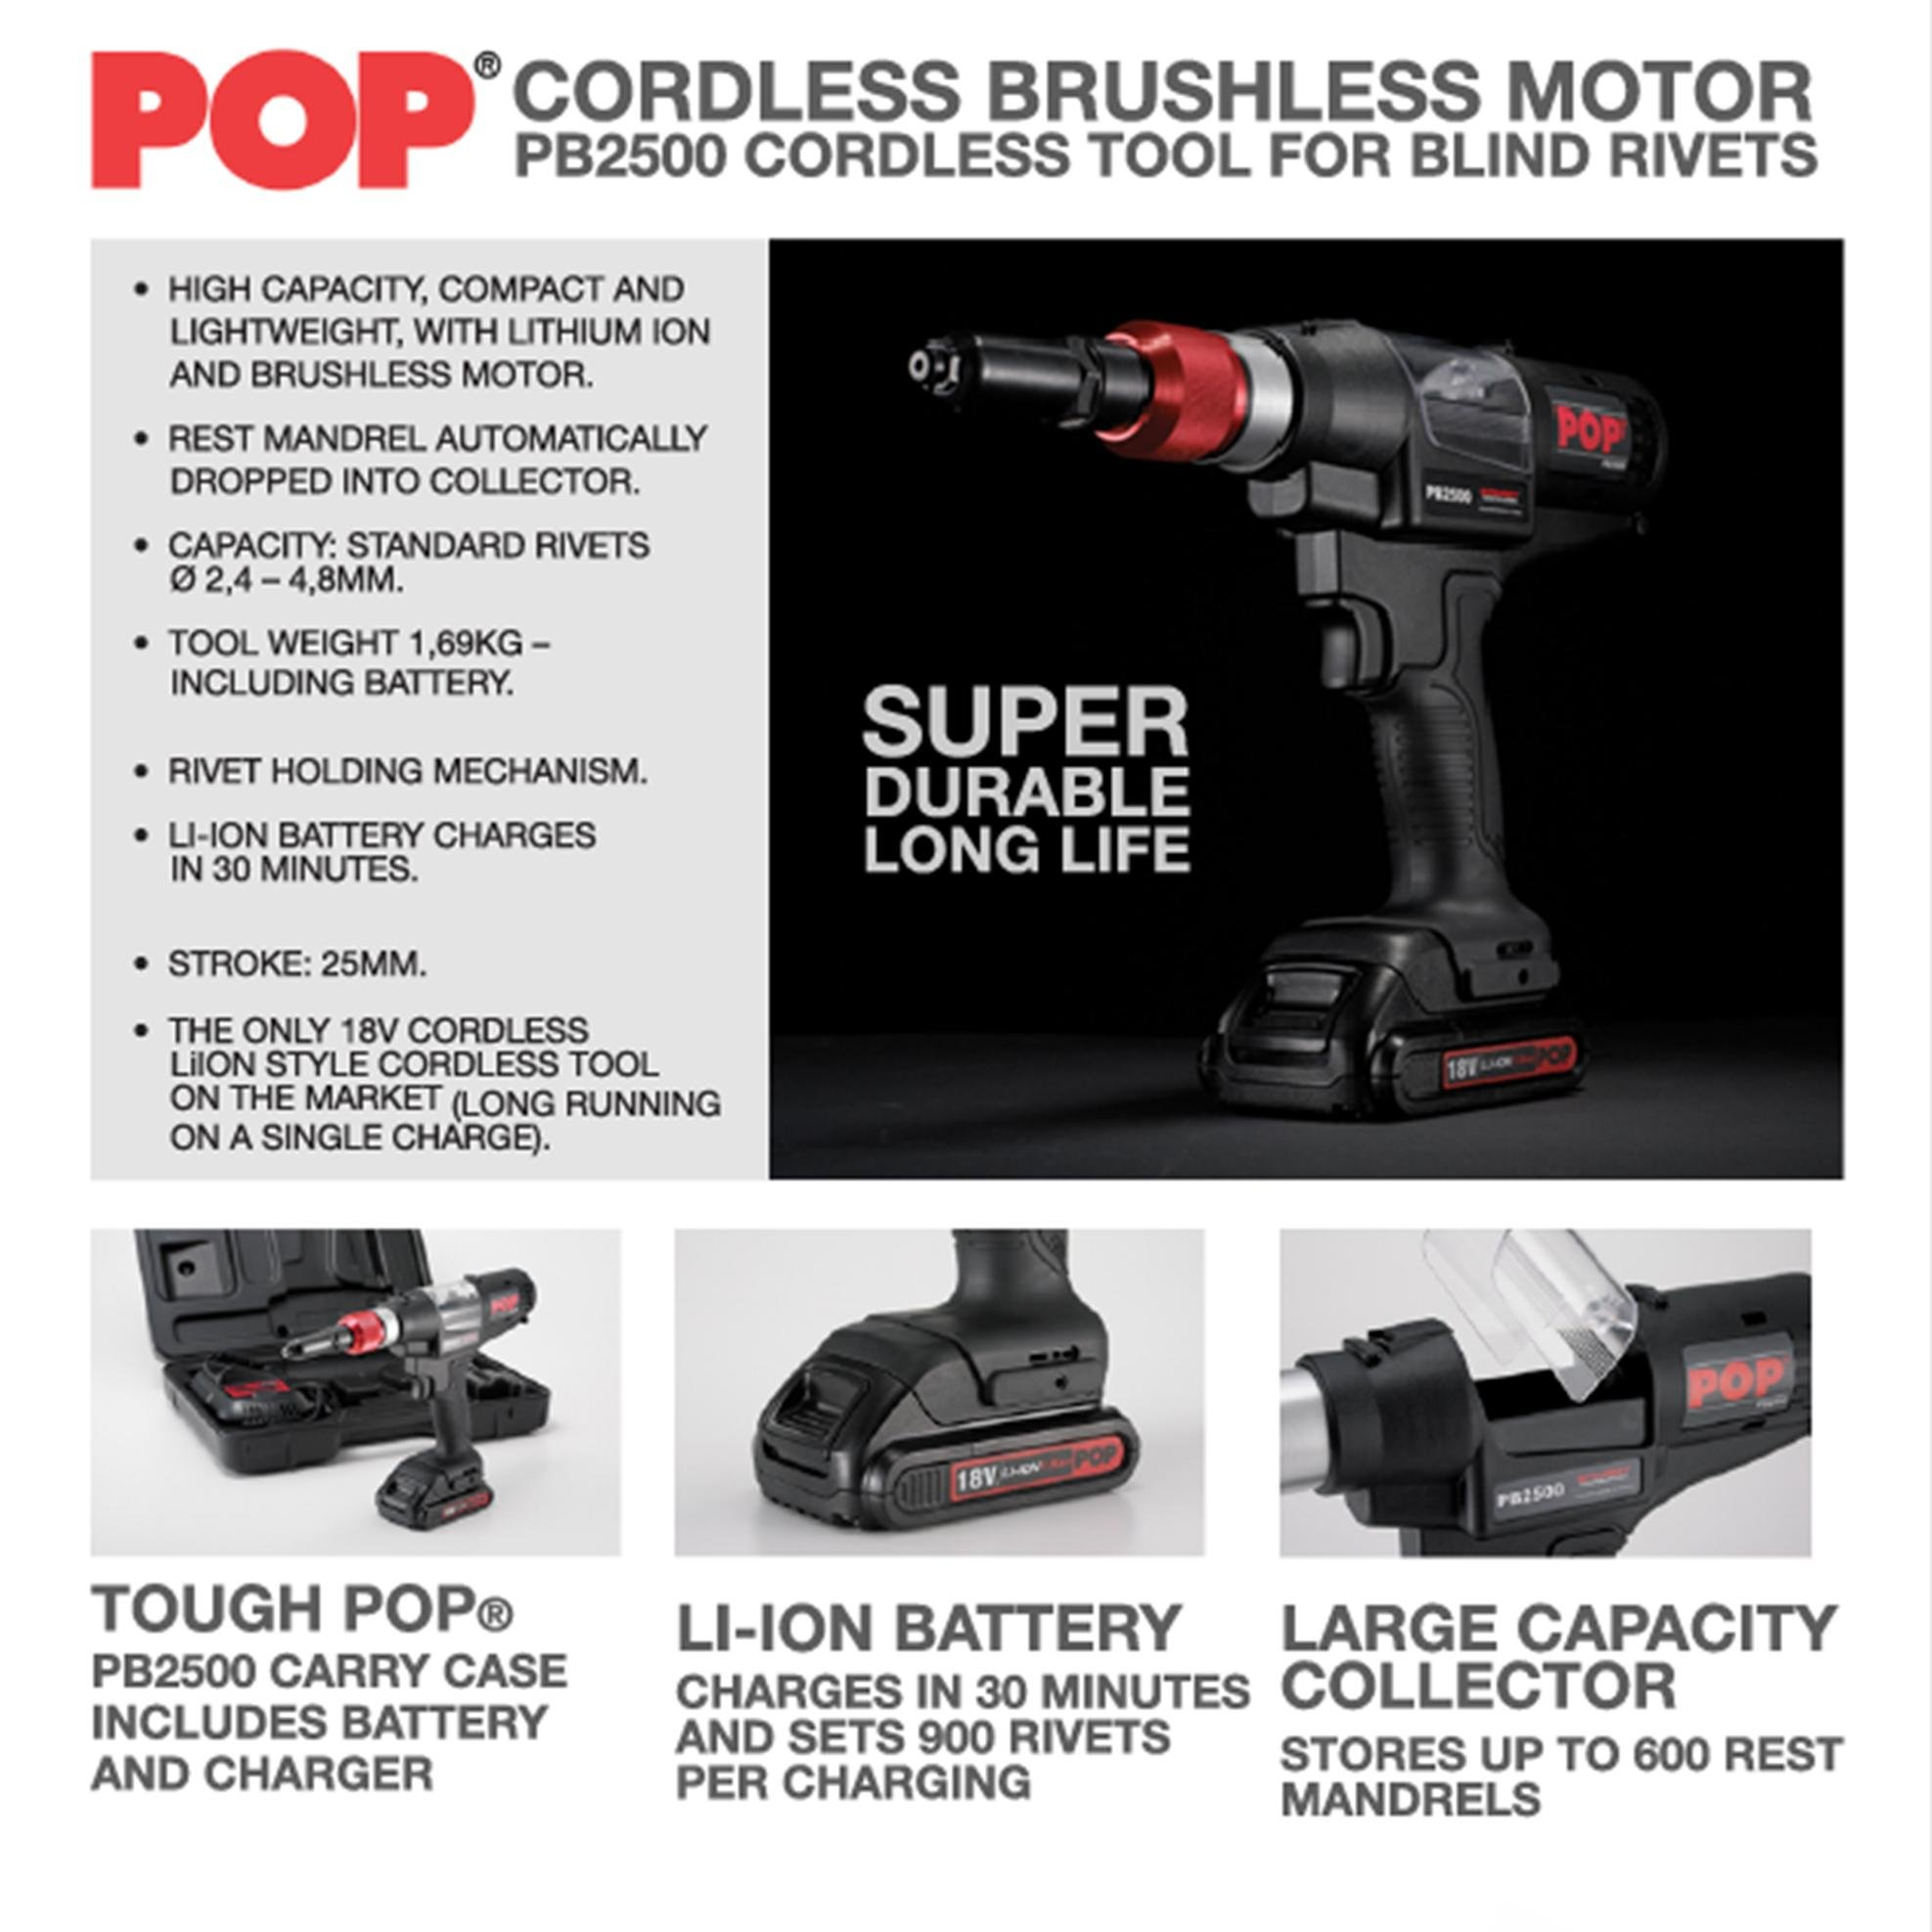 POP PB2500-NA CORDLESS RIVETER 18V 3/32-3/16 W/LiION BATTERY CHARGER CARRY CASE